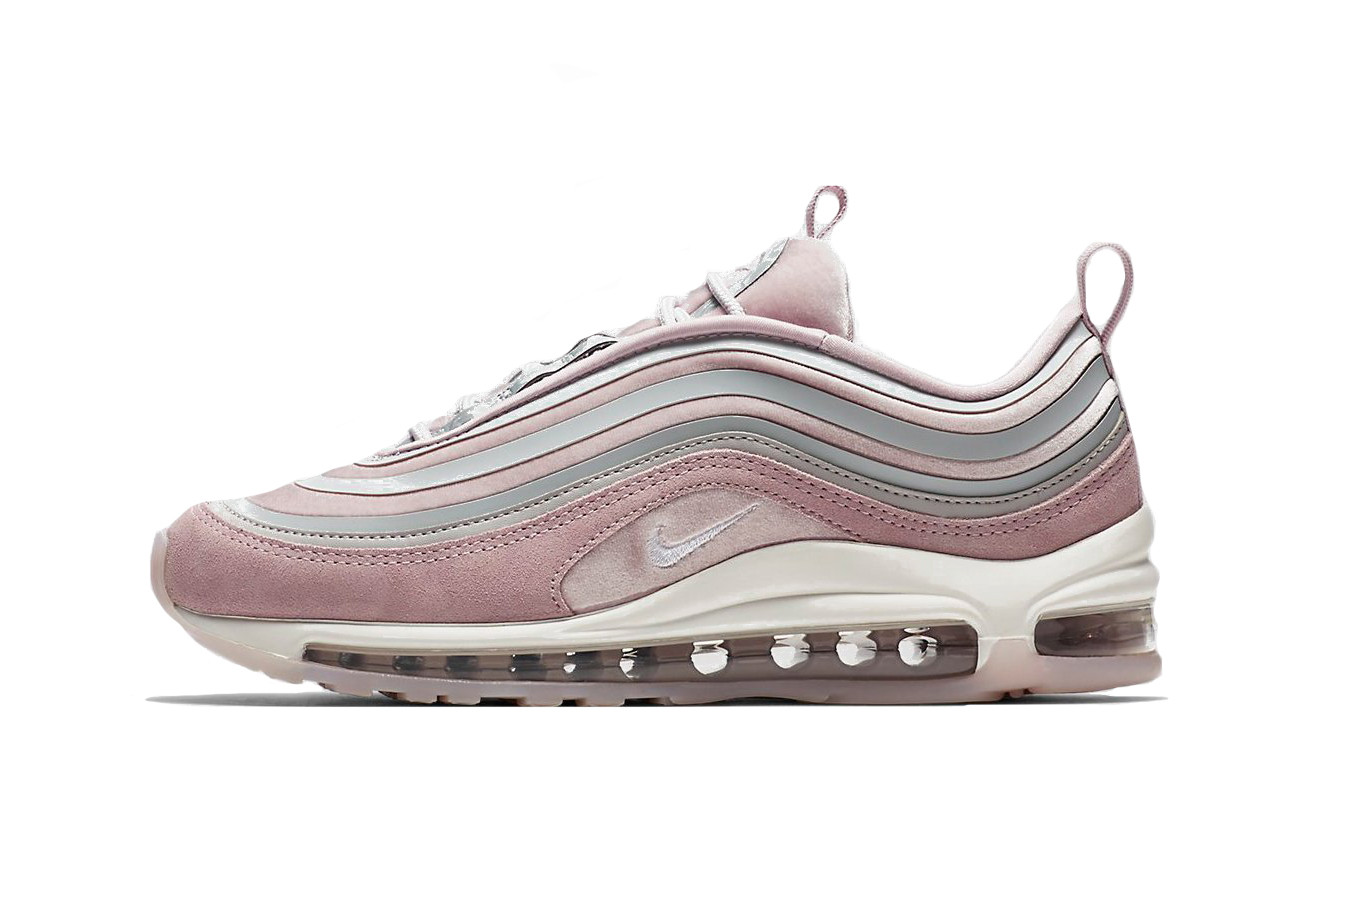 Nike's Air Max 97 Drops in a Rosy Pink